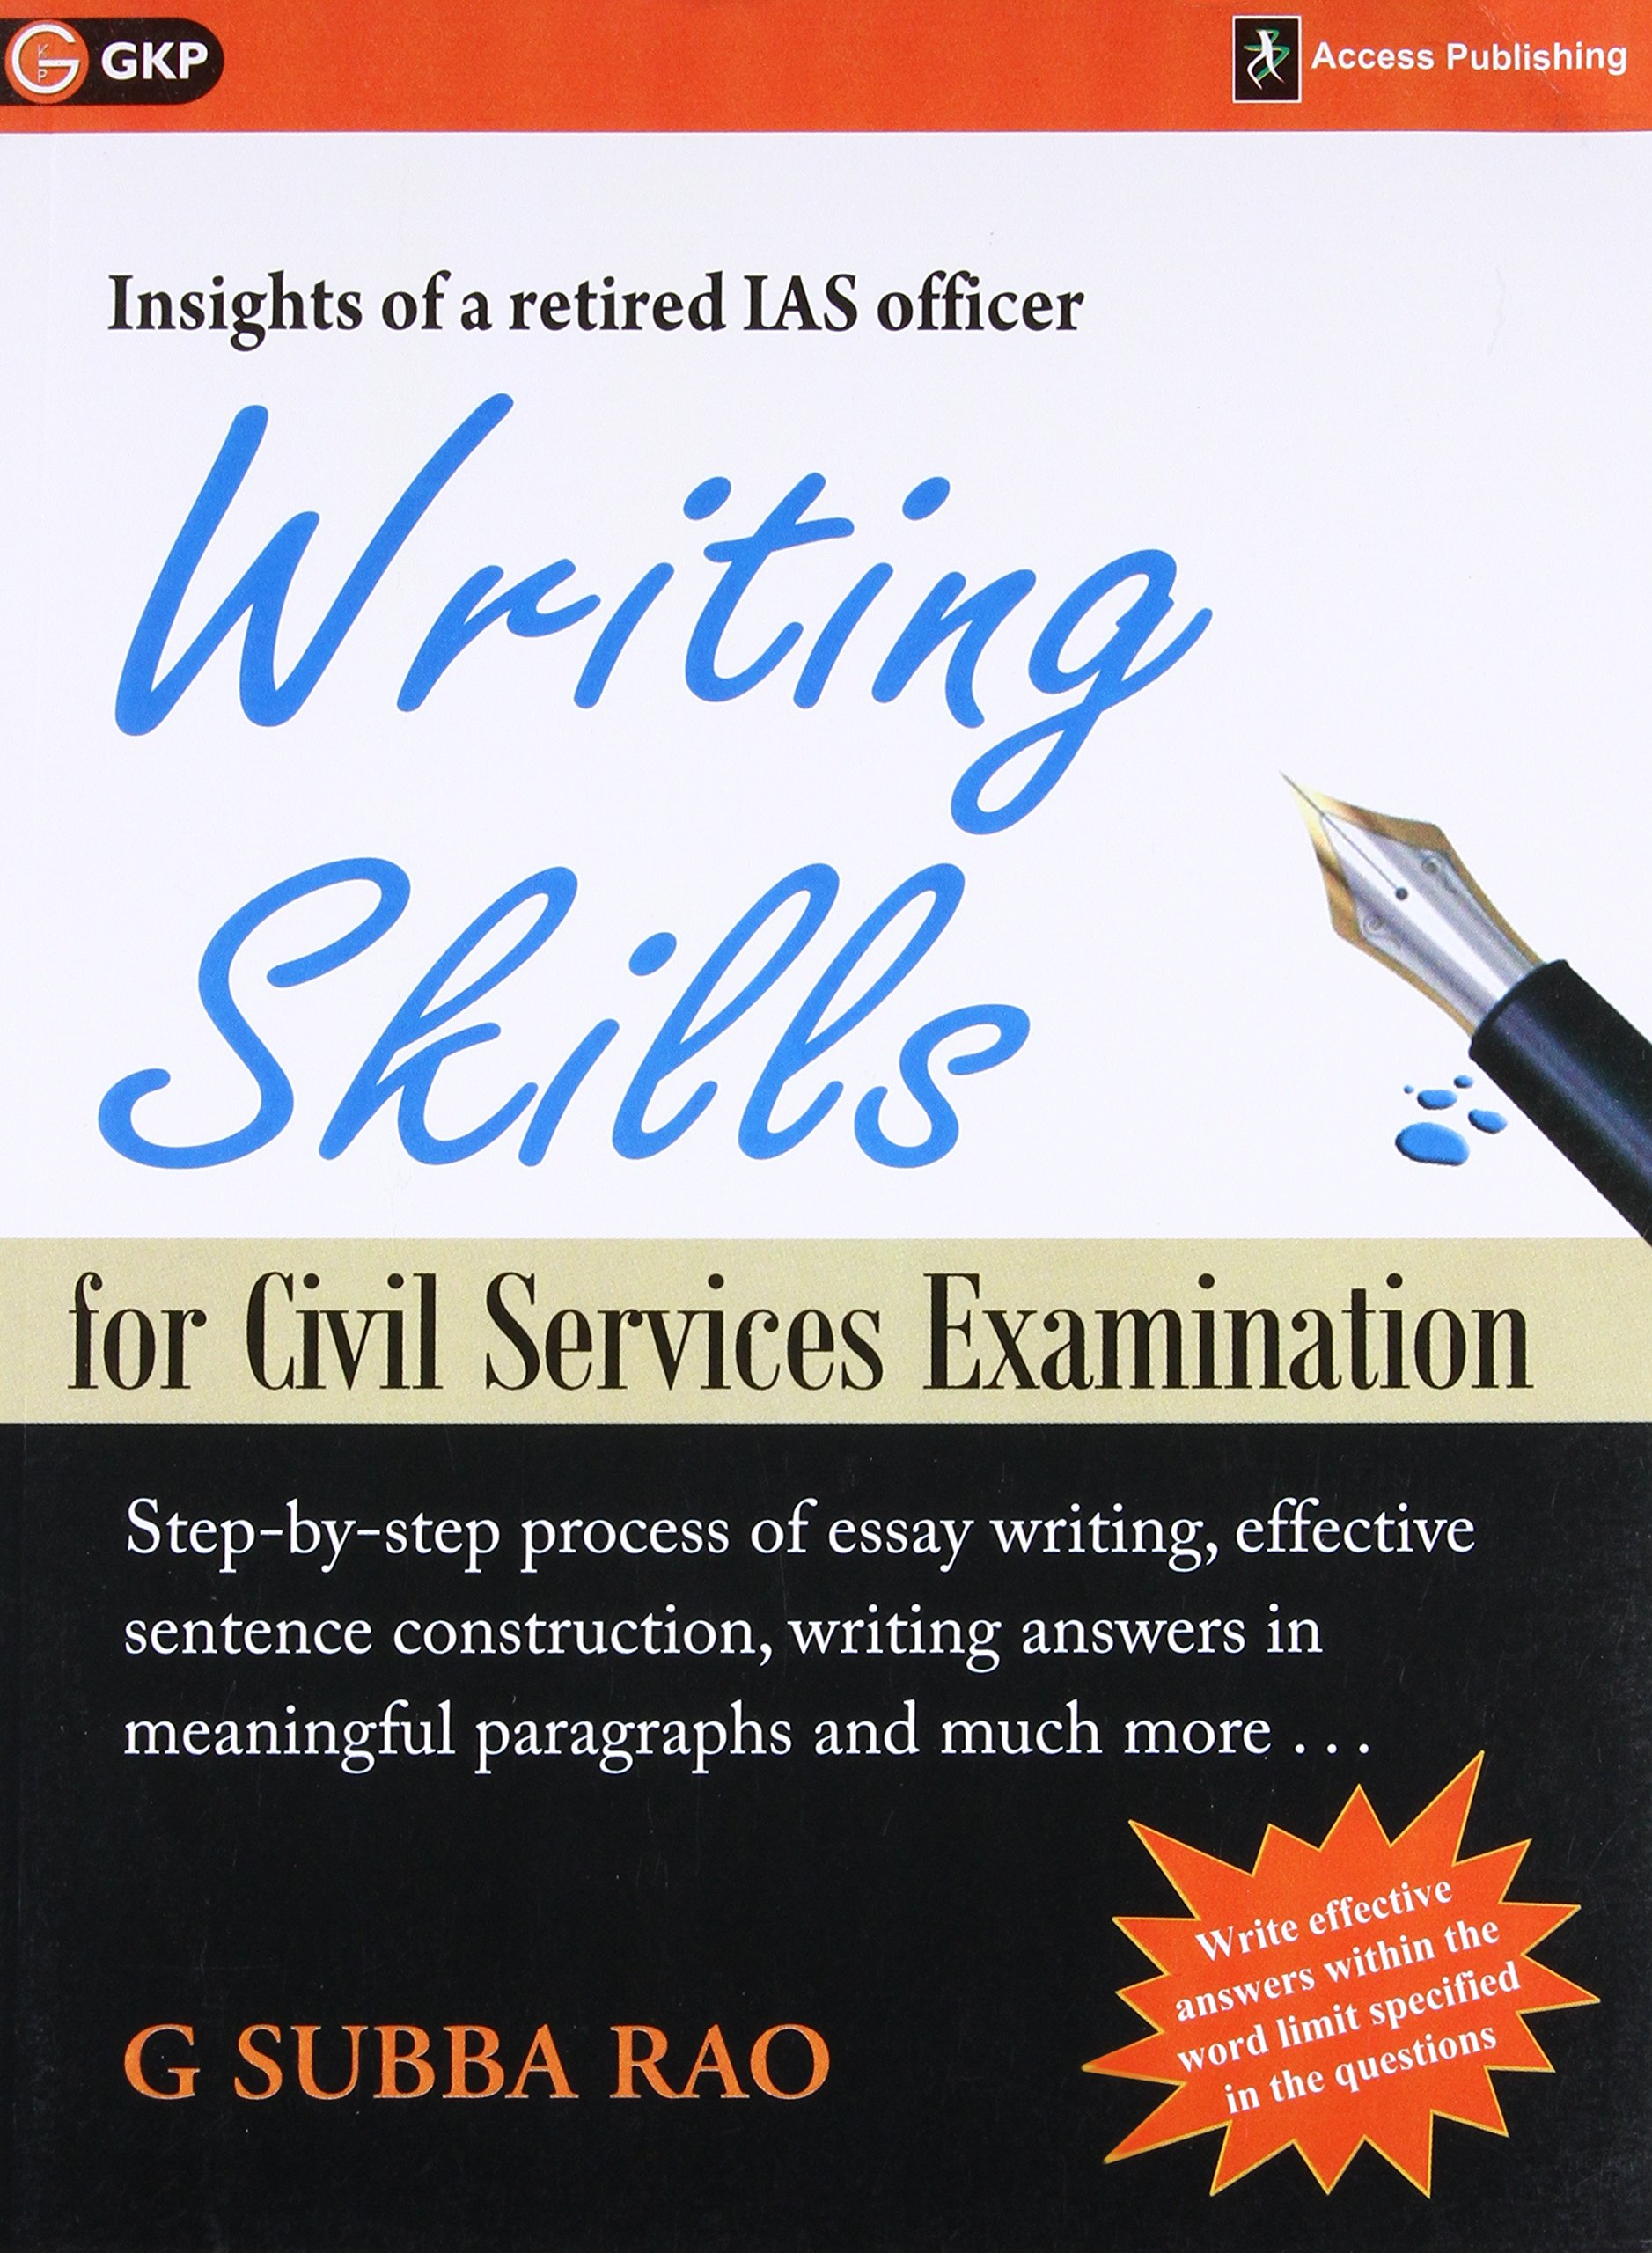 How to Tackle the Compulsory English Paper in UPSC Civil Services     Insights